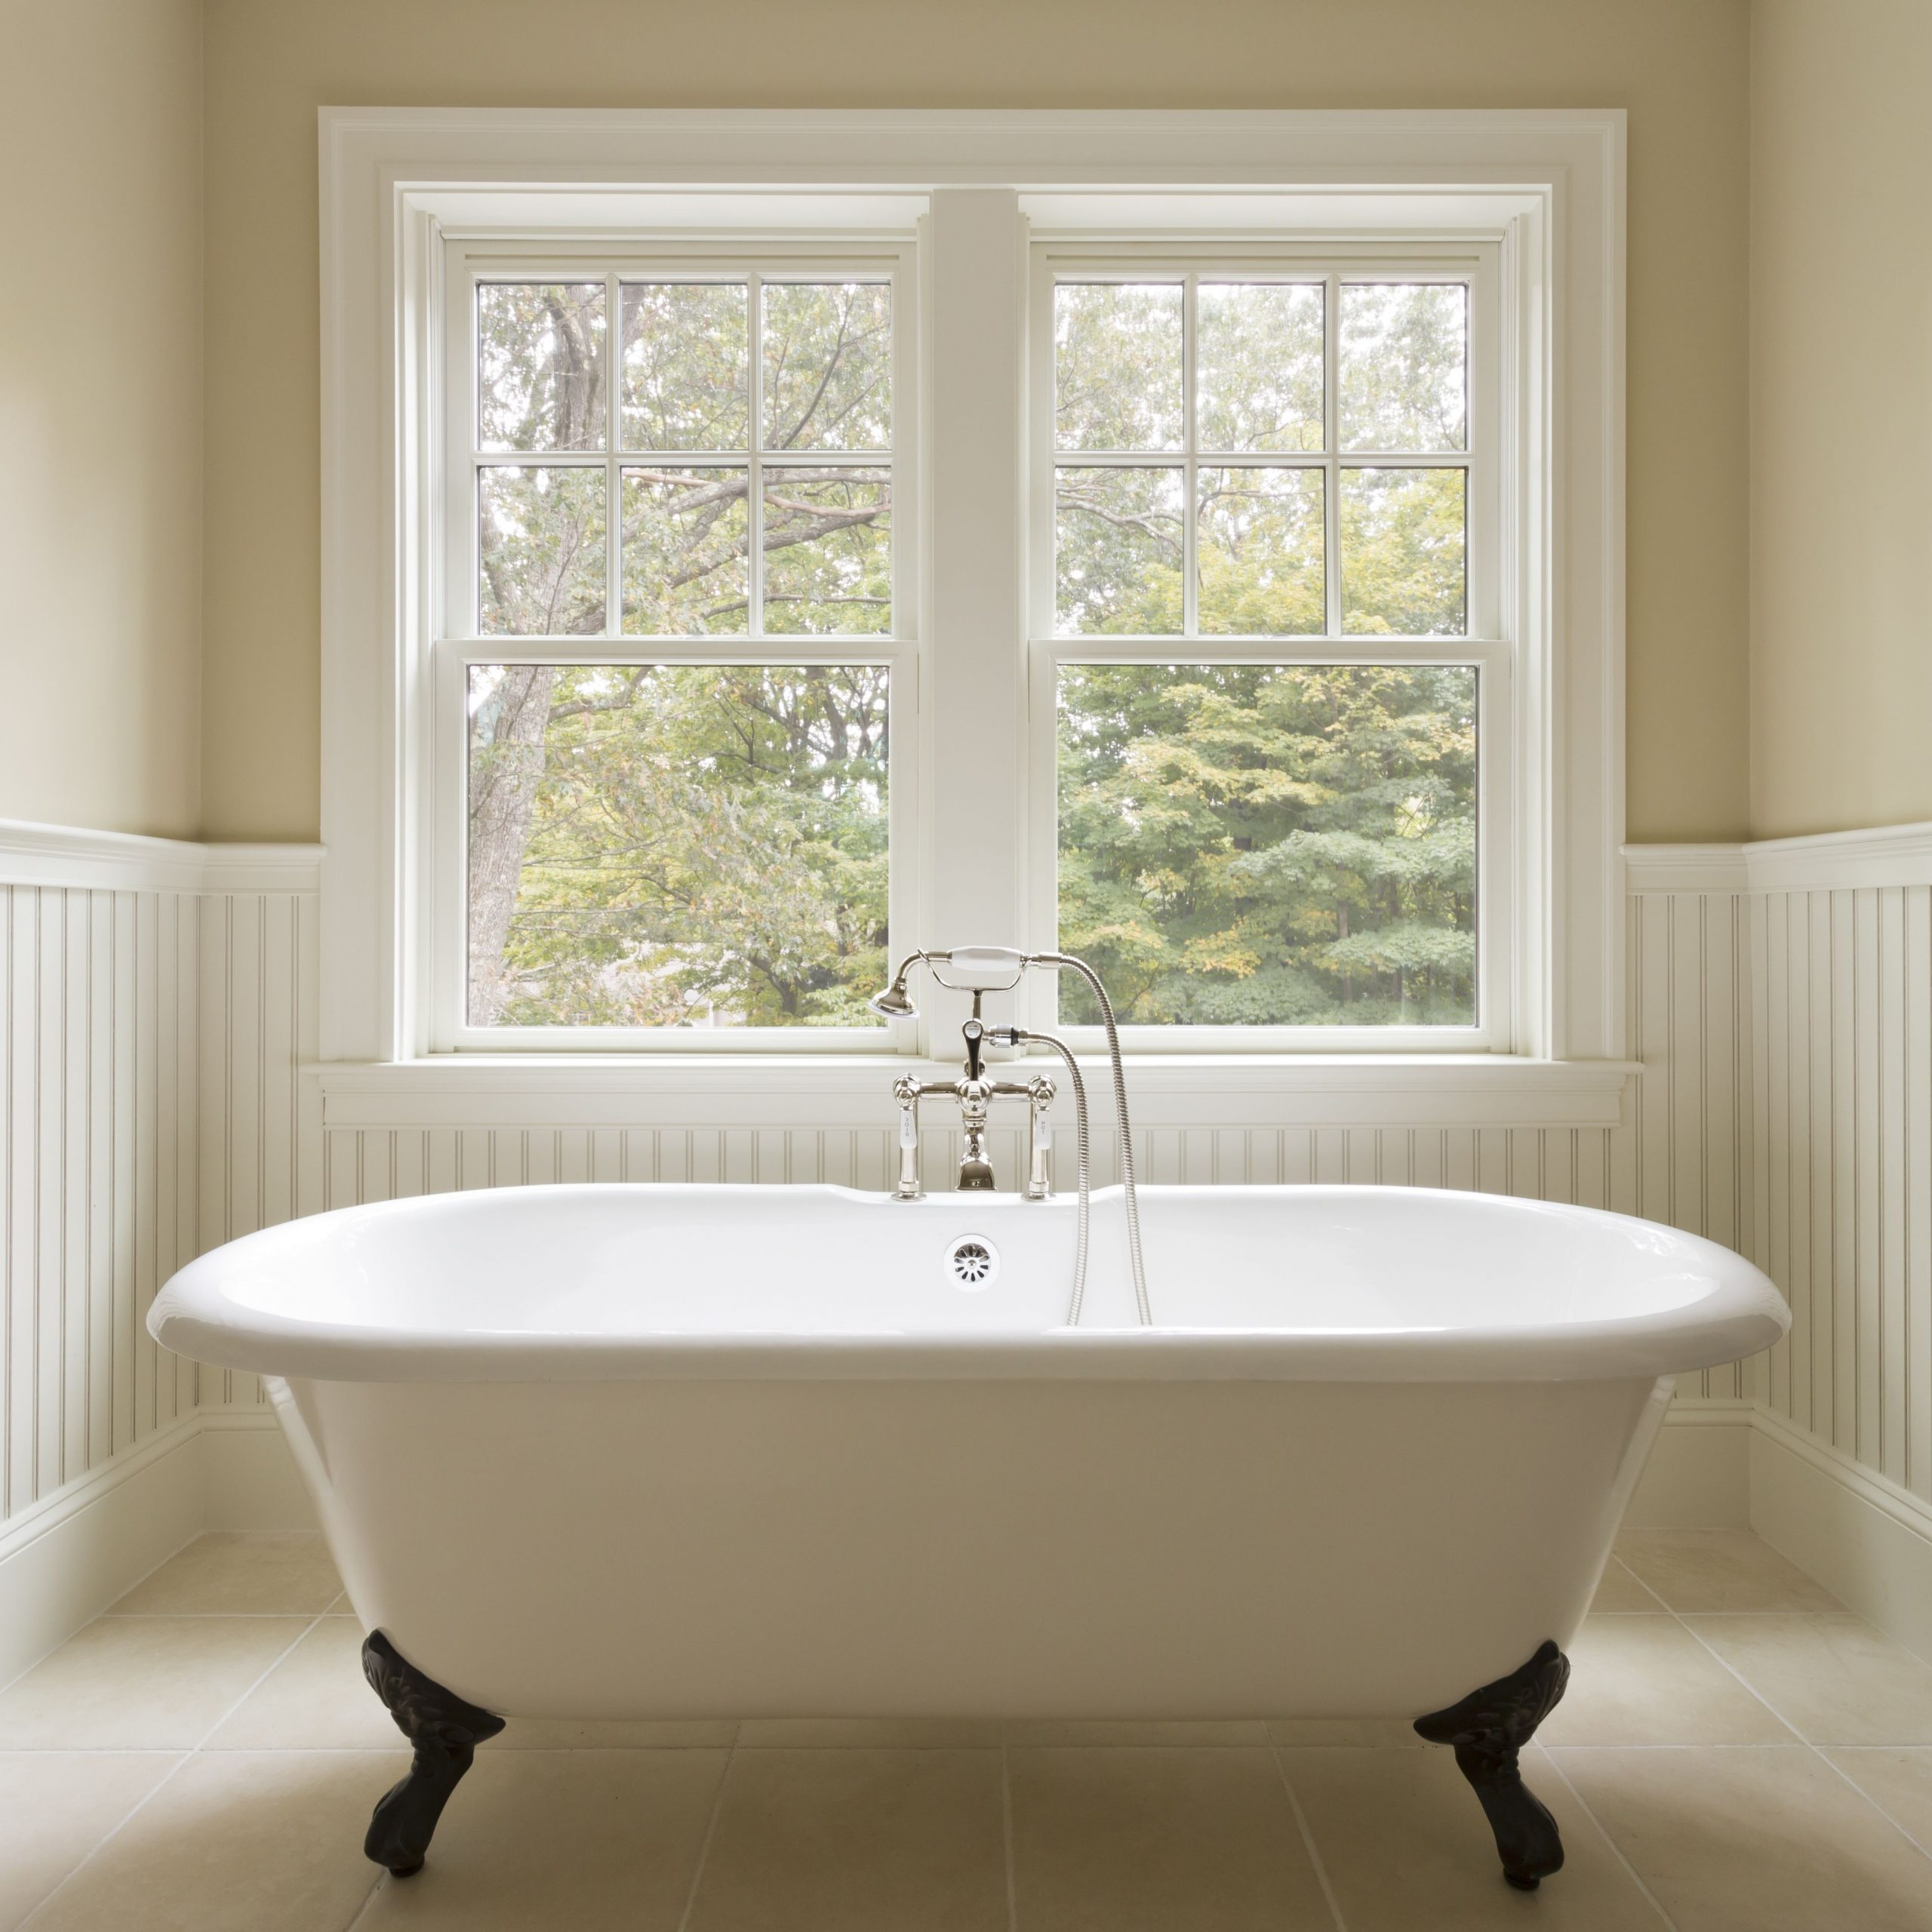 Claw Foot Tubs To Fit Your Space (And Budget) 40+ Cast Iron Tub Bathroom Design Inspirations